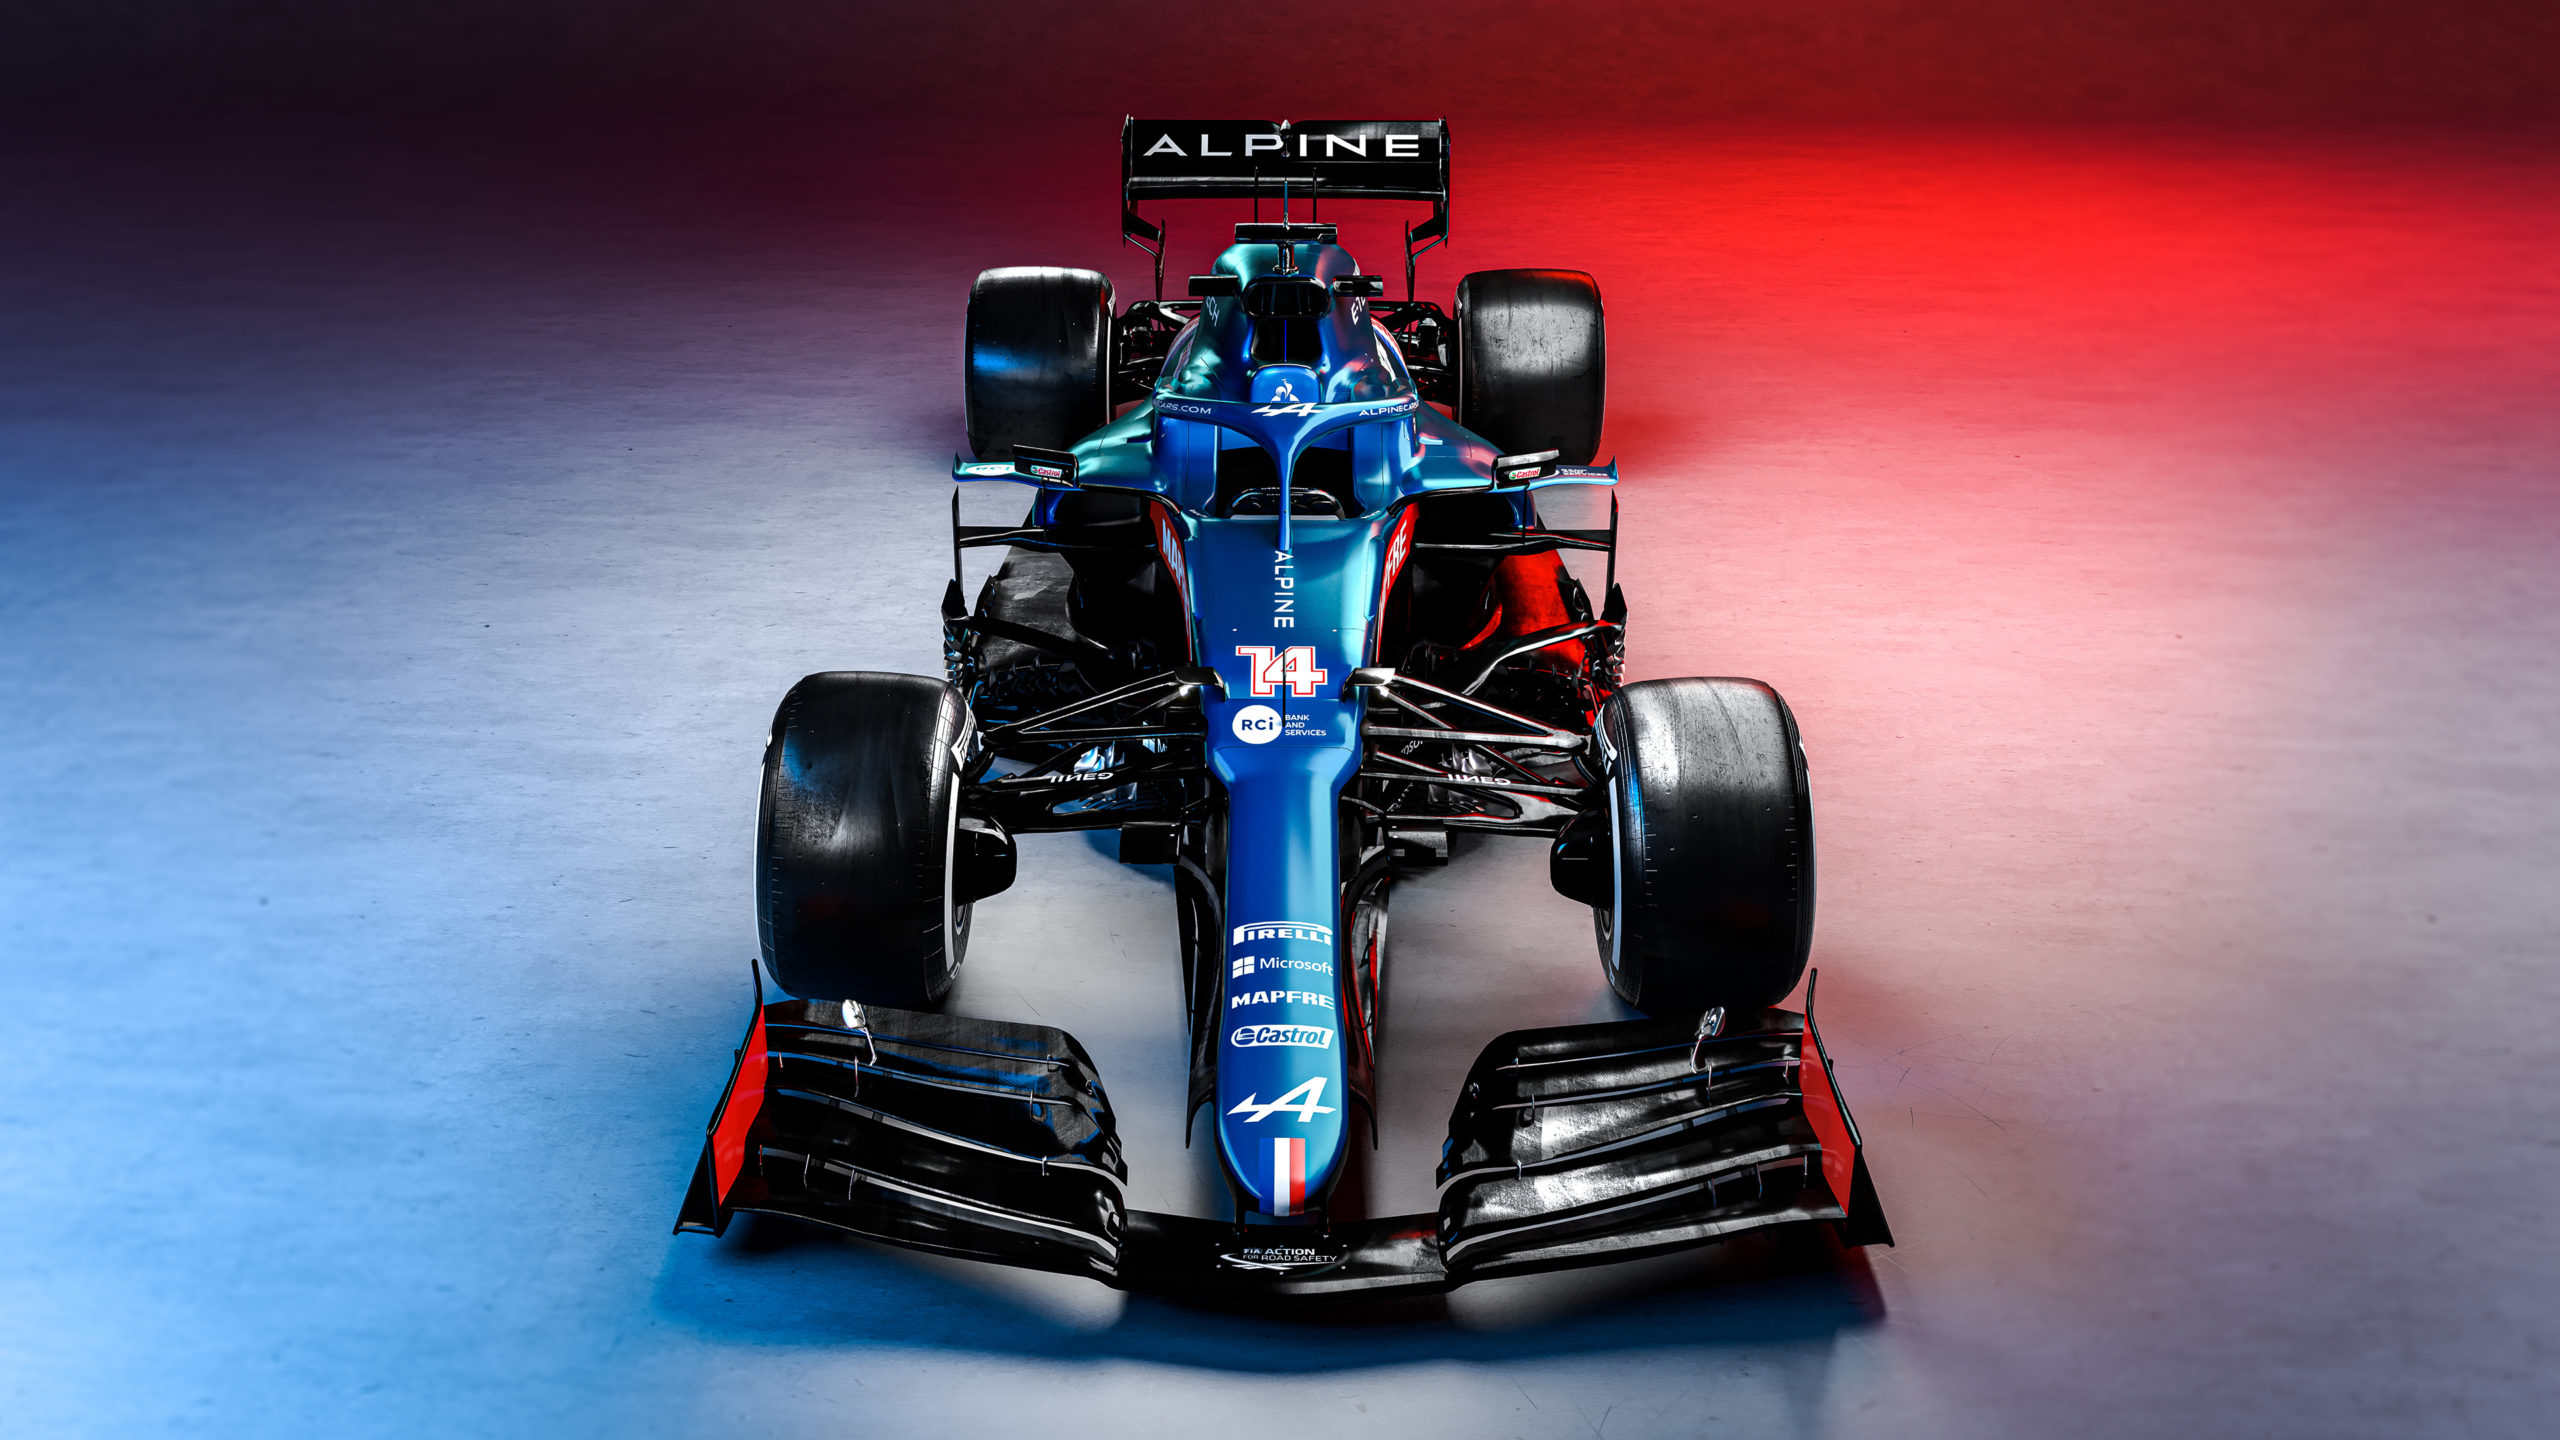 The Alpine F1 Team A521. Alpine F1 Team Launch, Tuesday 2nd March 2021.